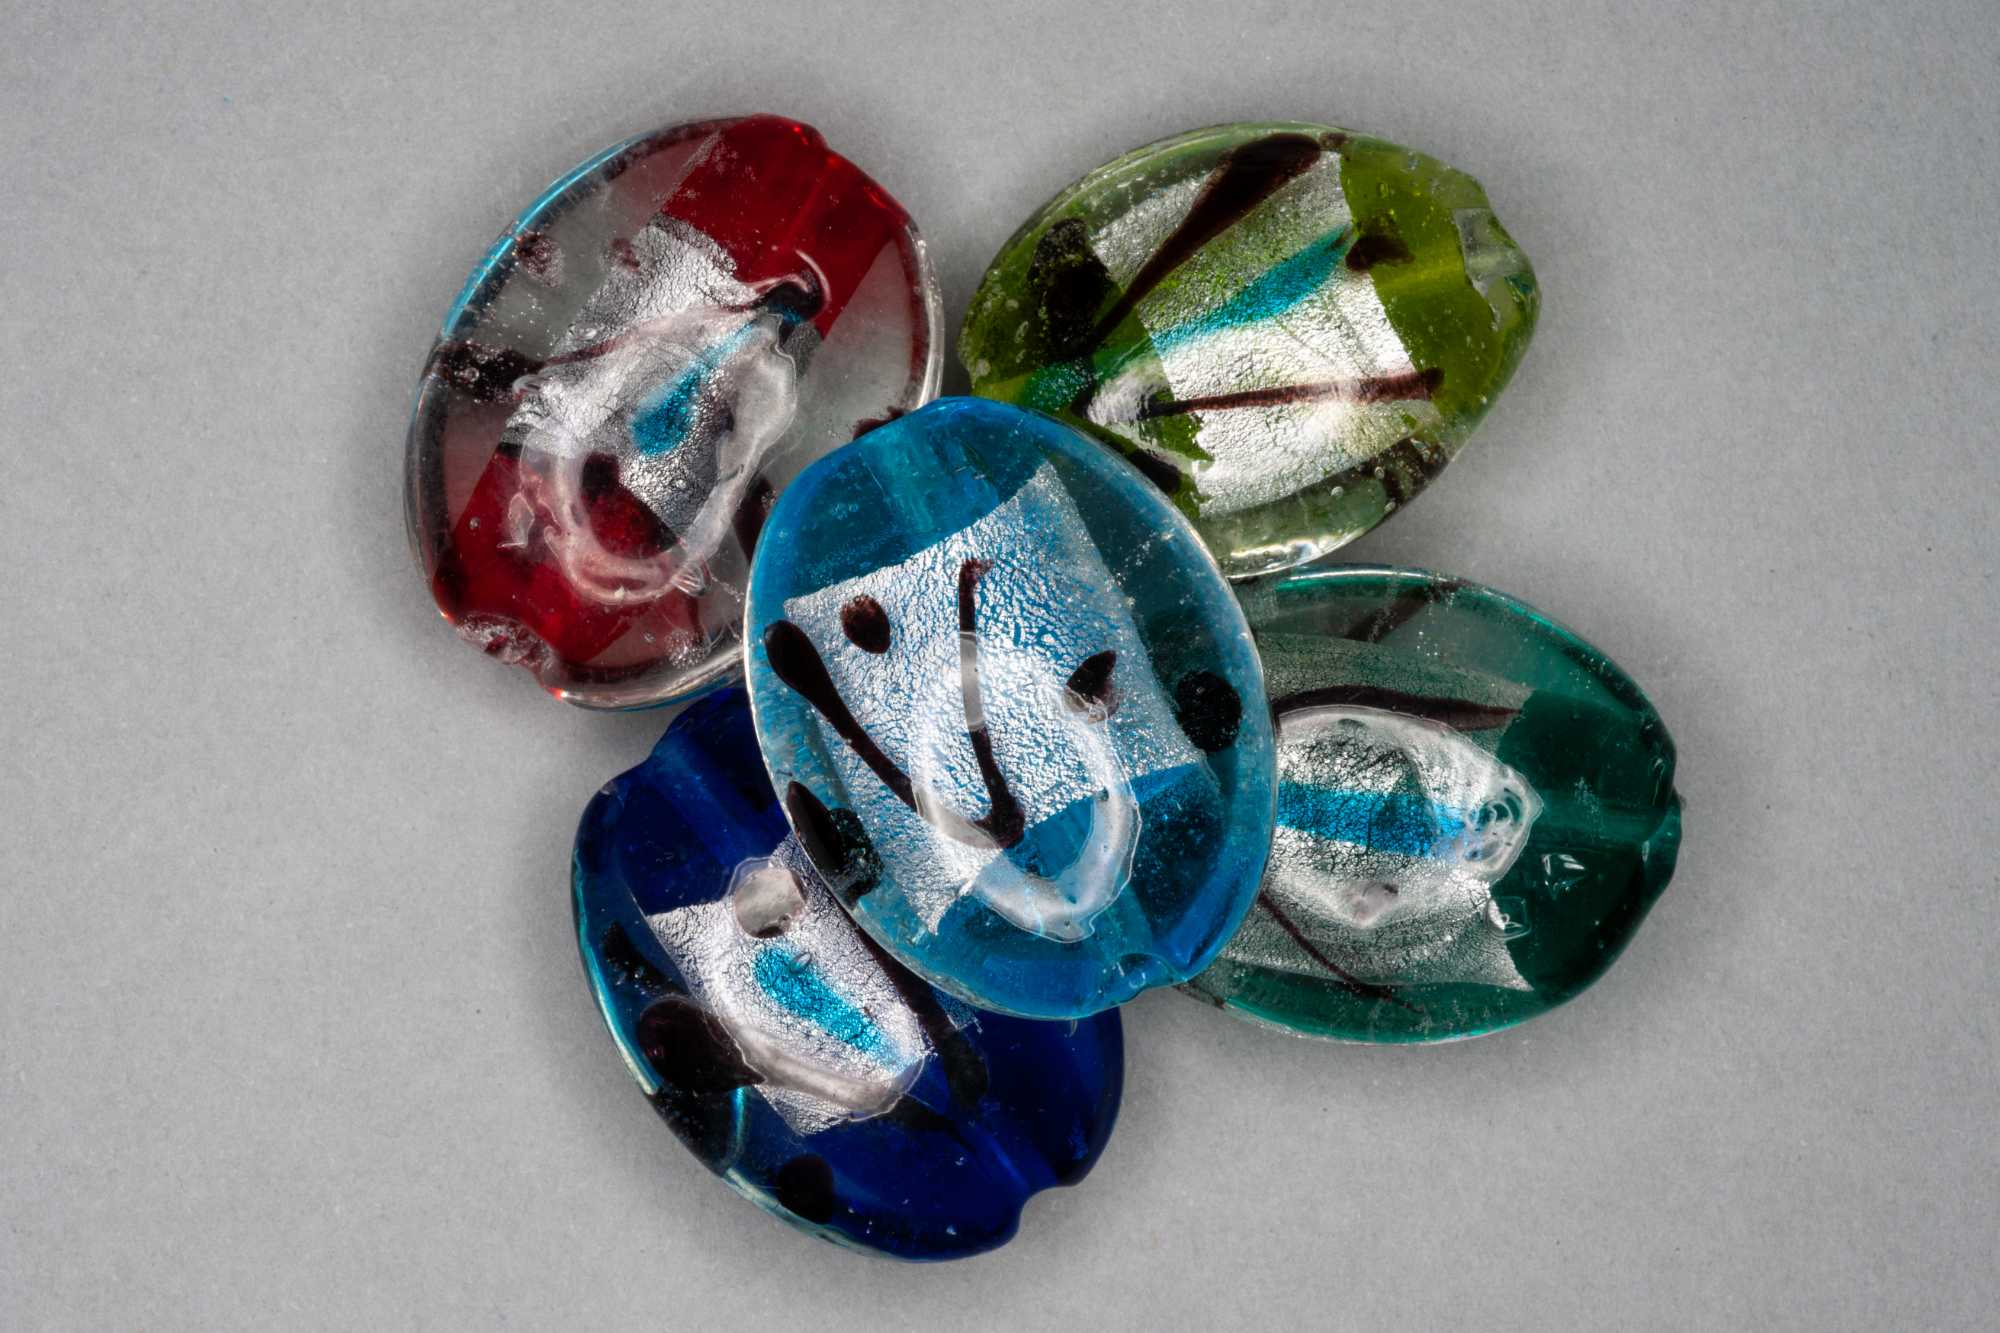 Pillow Oval Foil Stripe Glass Bead, 30x25x11mm